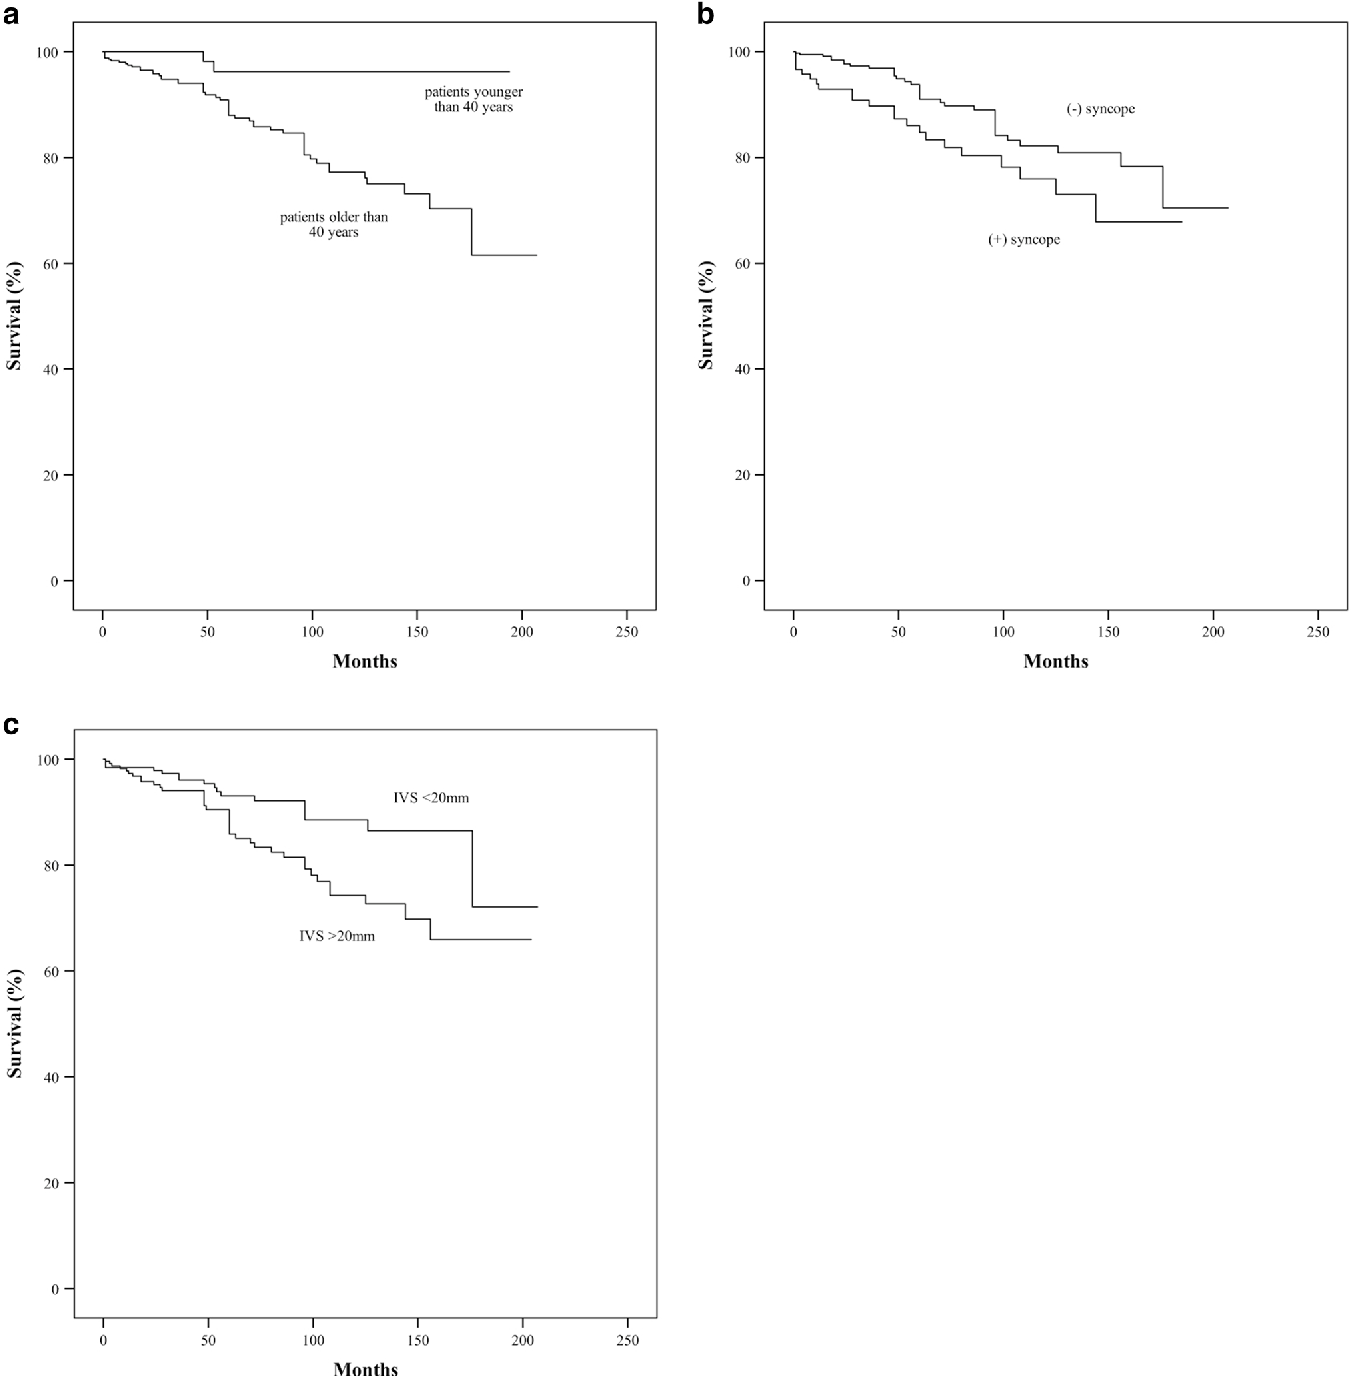 Fig. 2 a Survival curves after PTSMA grouped by baseline age < 40 vs. ≥ 40 years. b Survival curves after PTSMA grouped by history of syncope. c Survival curves after PTSMA grouped by baseline septal thickness (IVS ≤ 20 vs. >20 mm)